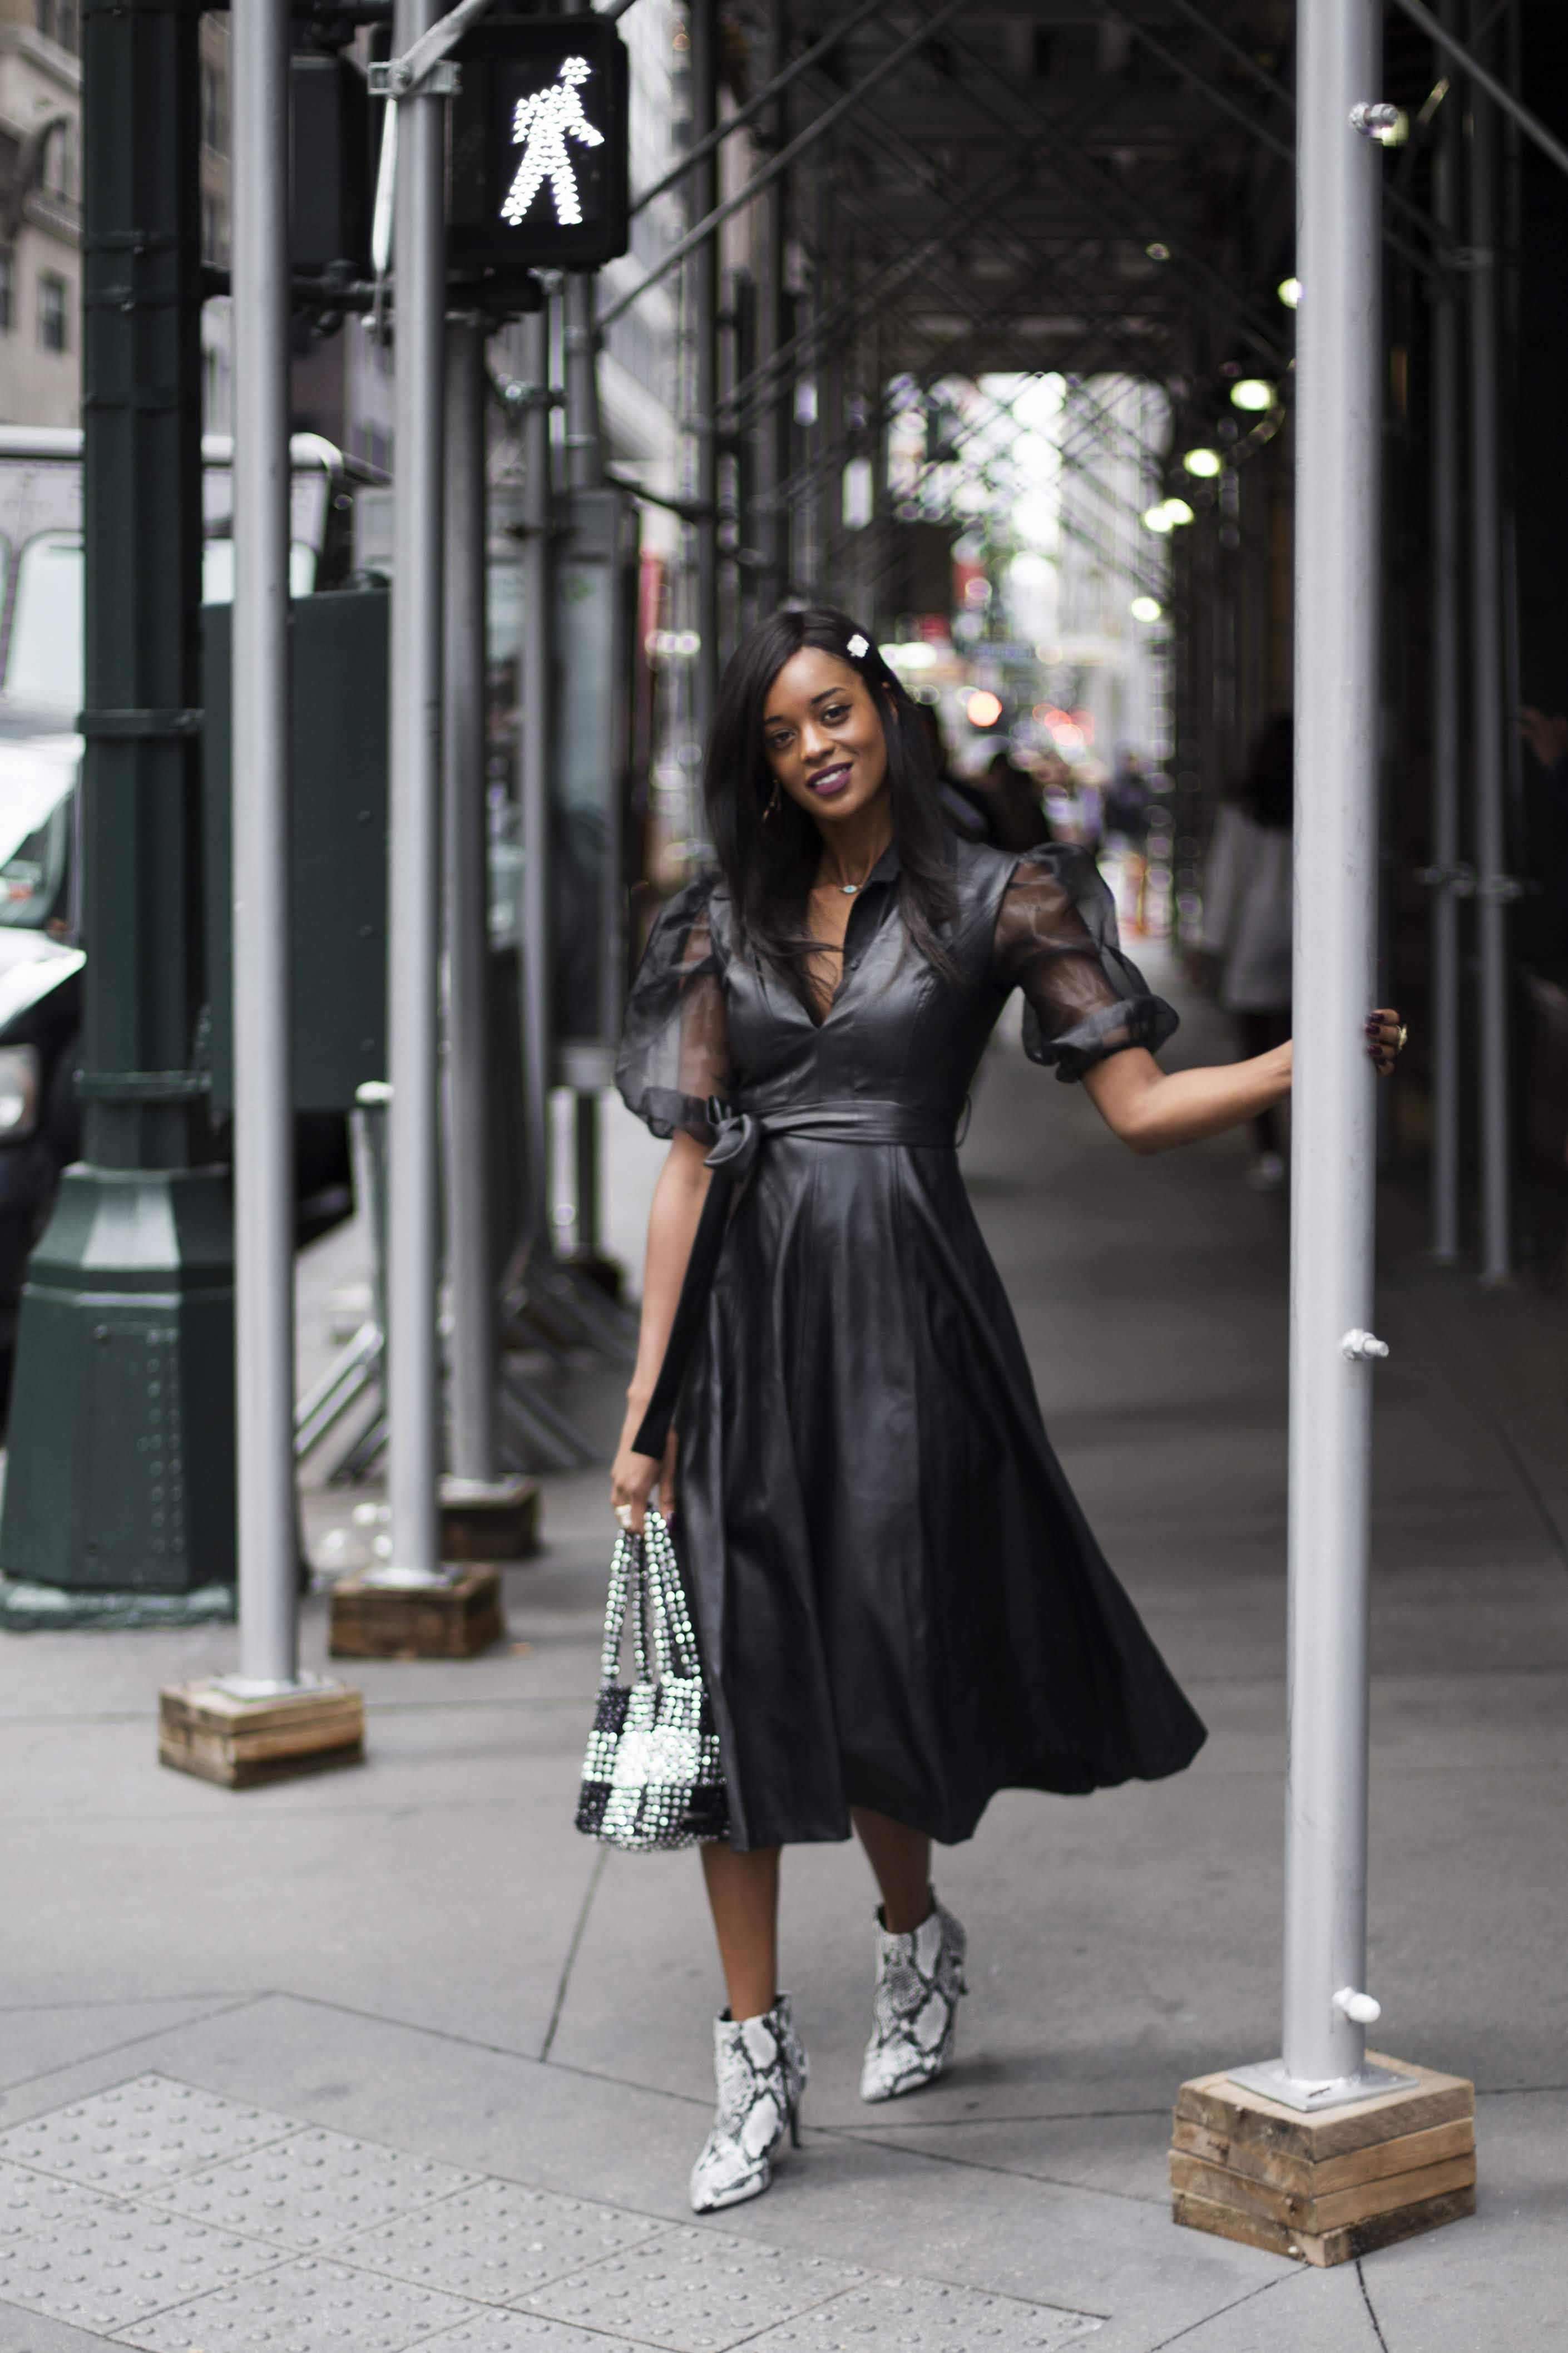 Woman crossing a NYC street wearing a black leather dress and snake print shoes